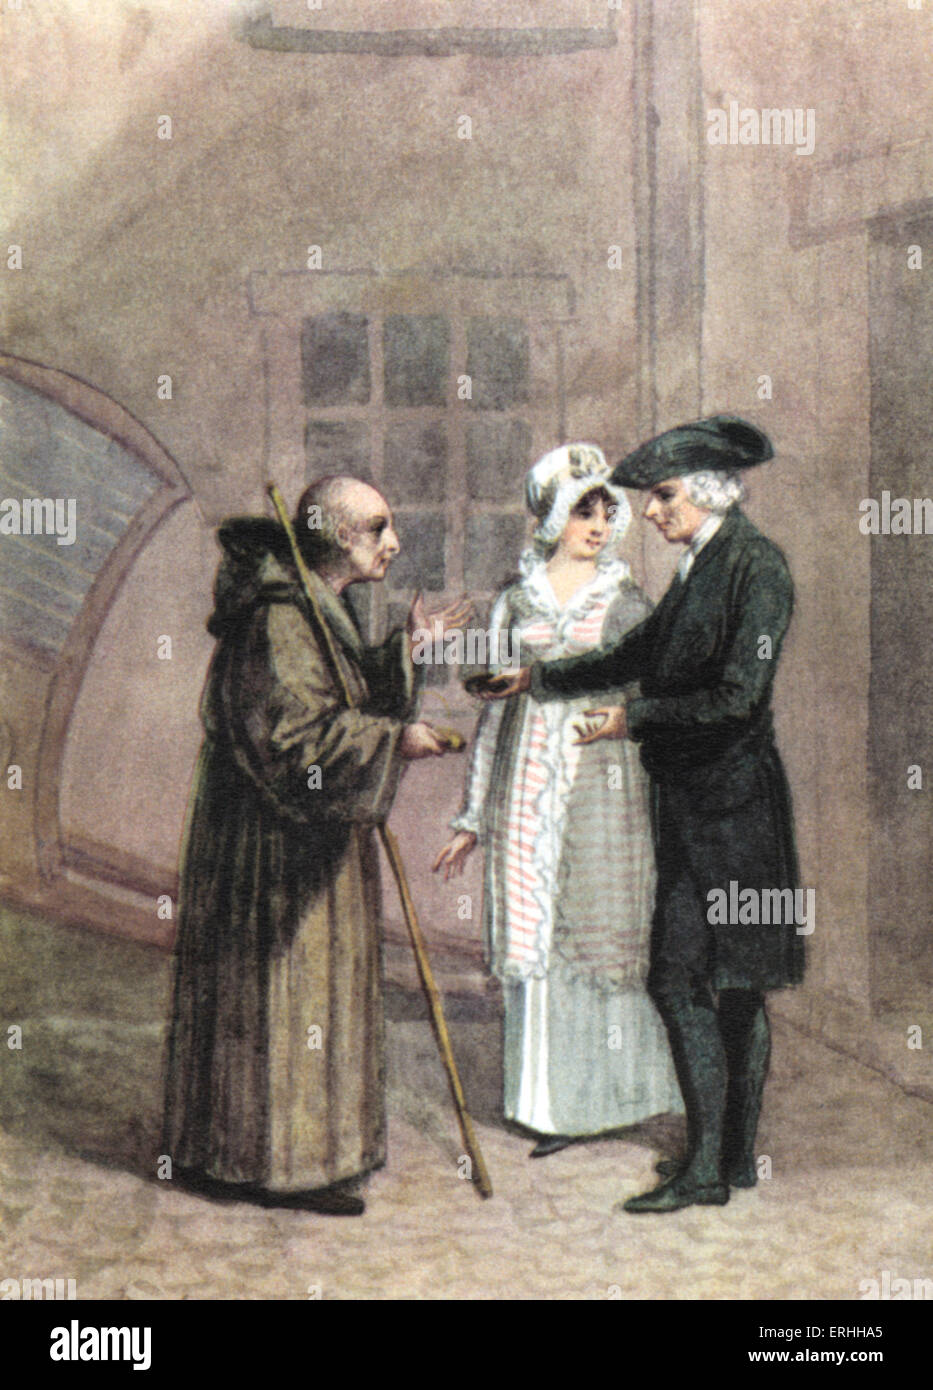 Laurence Sterne - 'Sentimental Journey' : Yorik , The Monk  and Madame L--- in the inn courtyard at Calais. - Stock Image